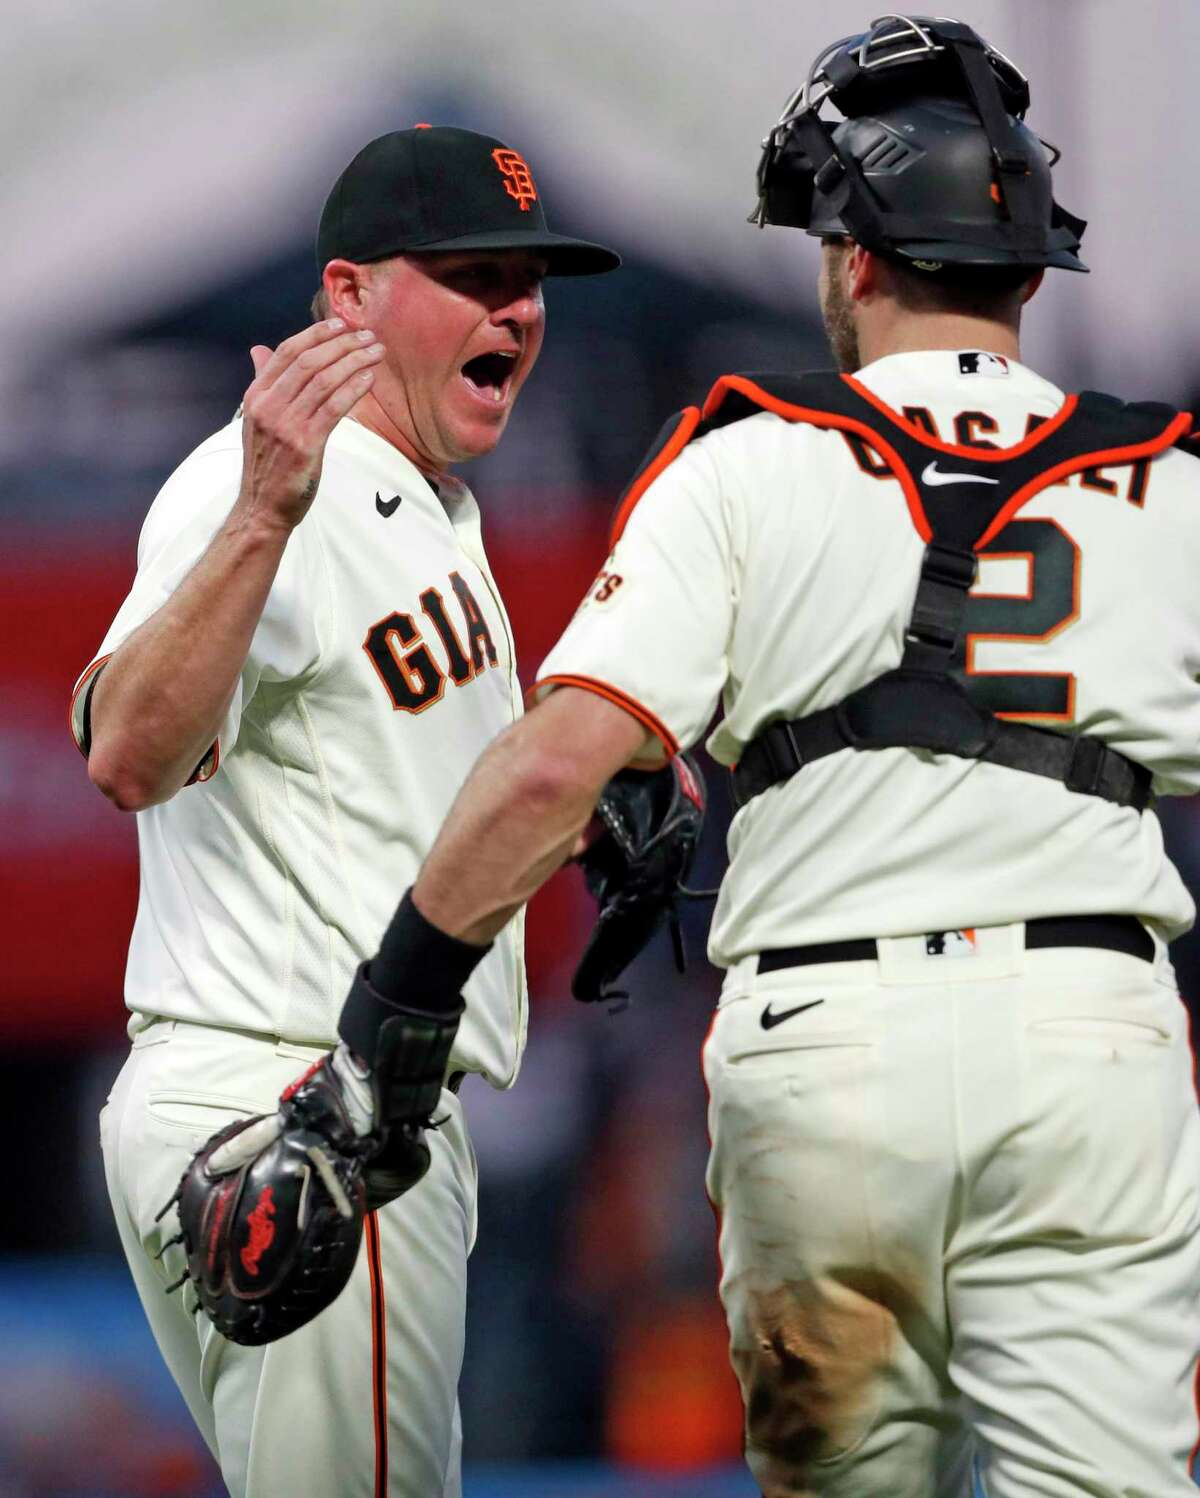 San Francisco Giants' Jake McGee and Curt Casali celebrate 6-4 win over Los Angeles Dodgers in MLB game at Oracle Park in San Francisco.